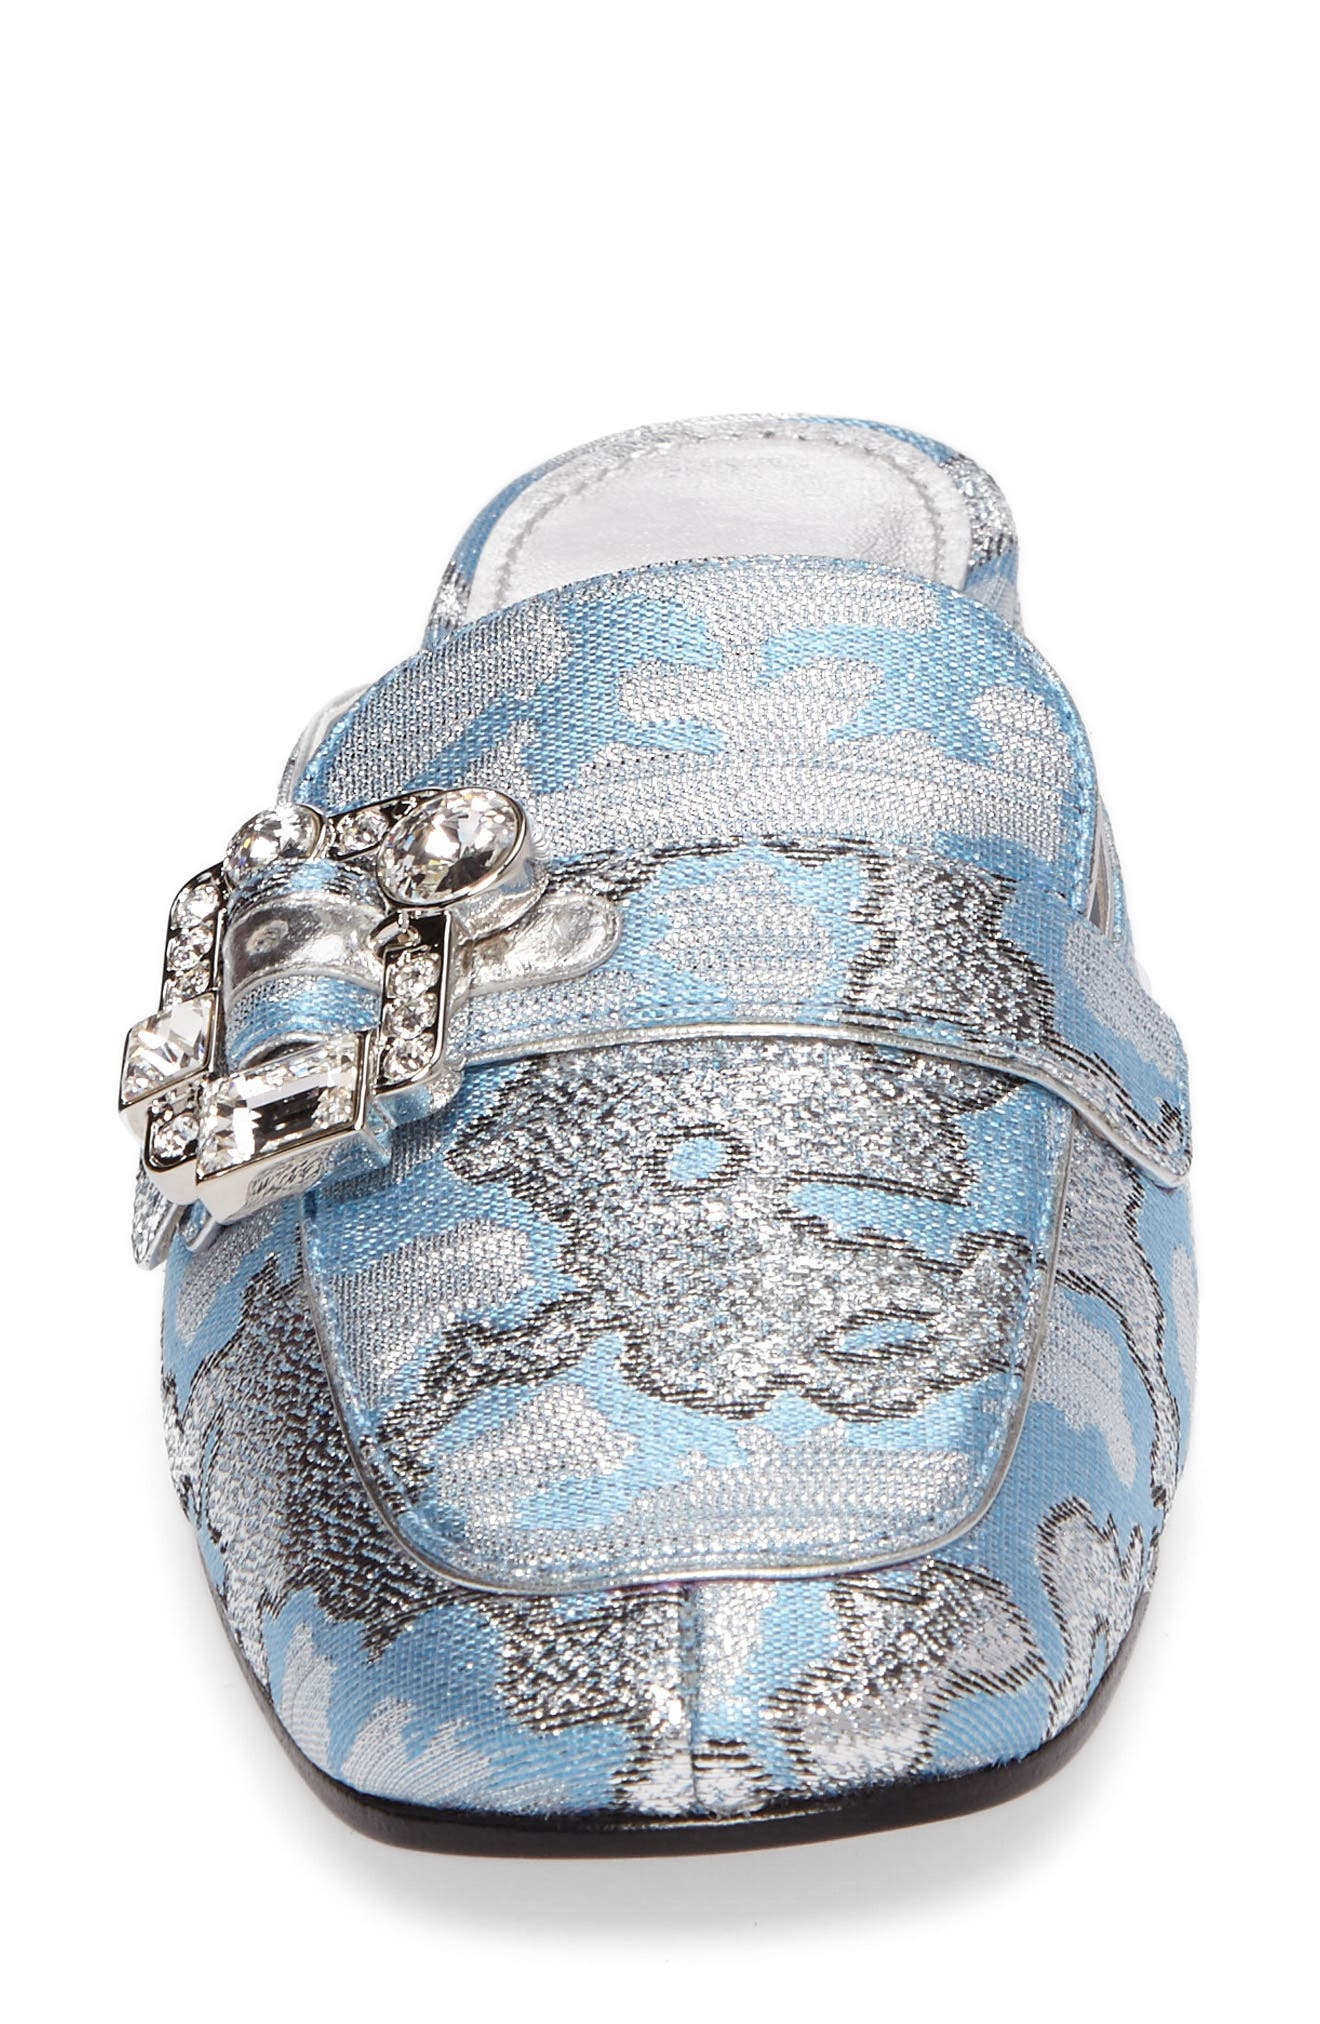 Crystal Buckle Loafer Mule,                             Alternate thumbnail 4, color,